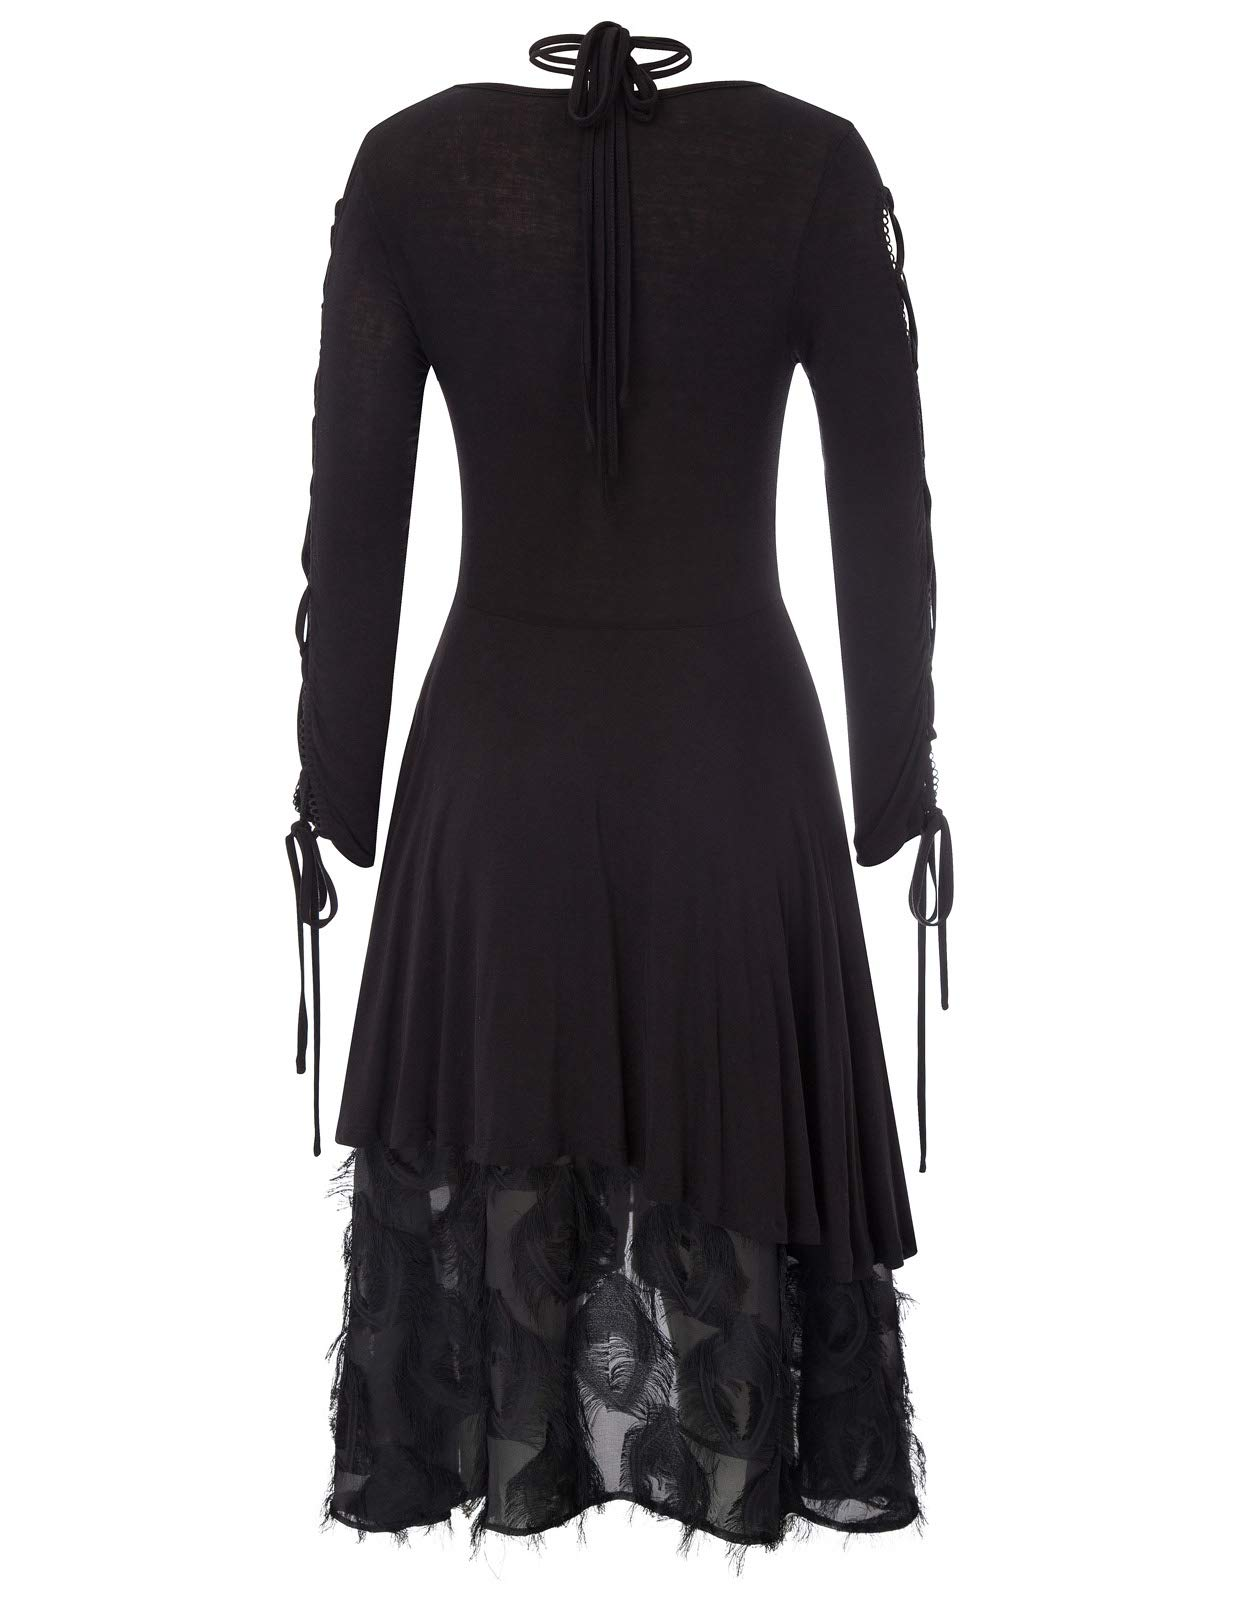 Women Gothic Dress Steampunk Victorian Lace Tie Neck Witch Quirky Dresses 4